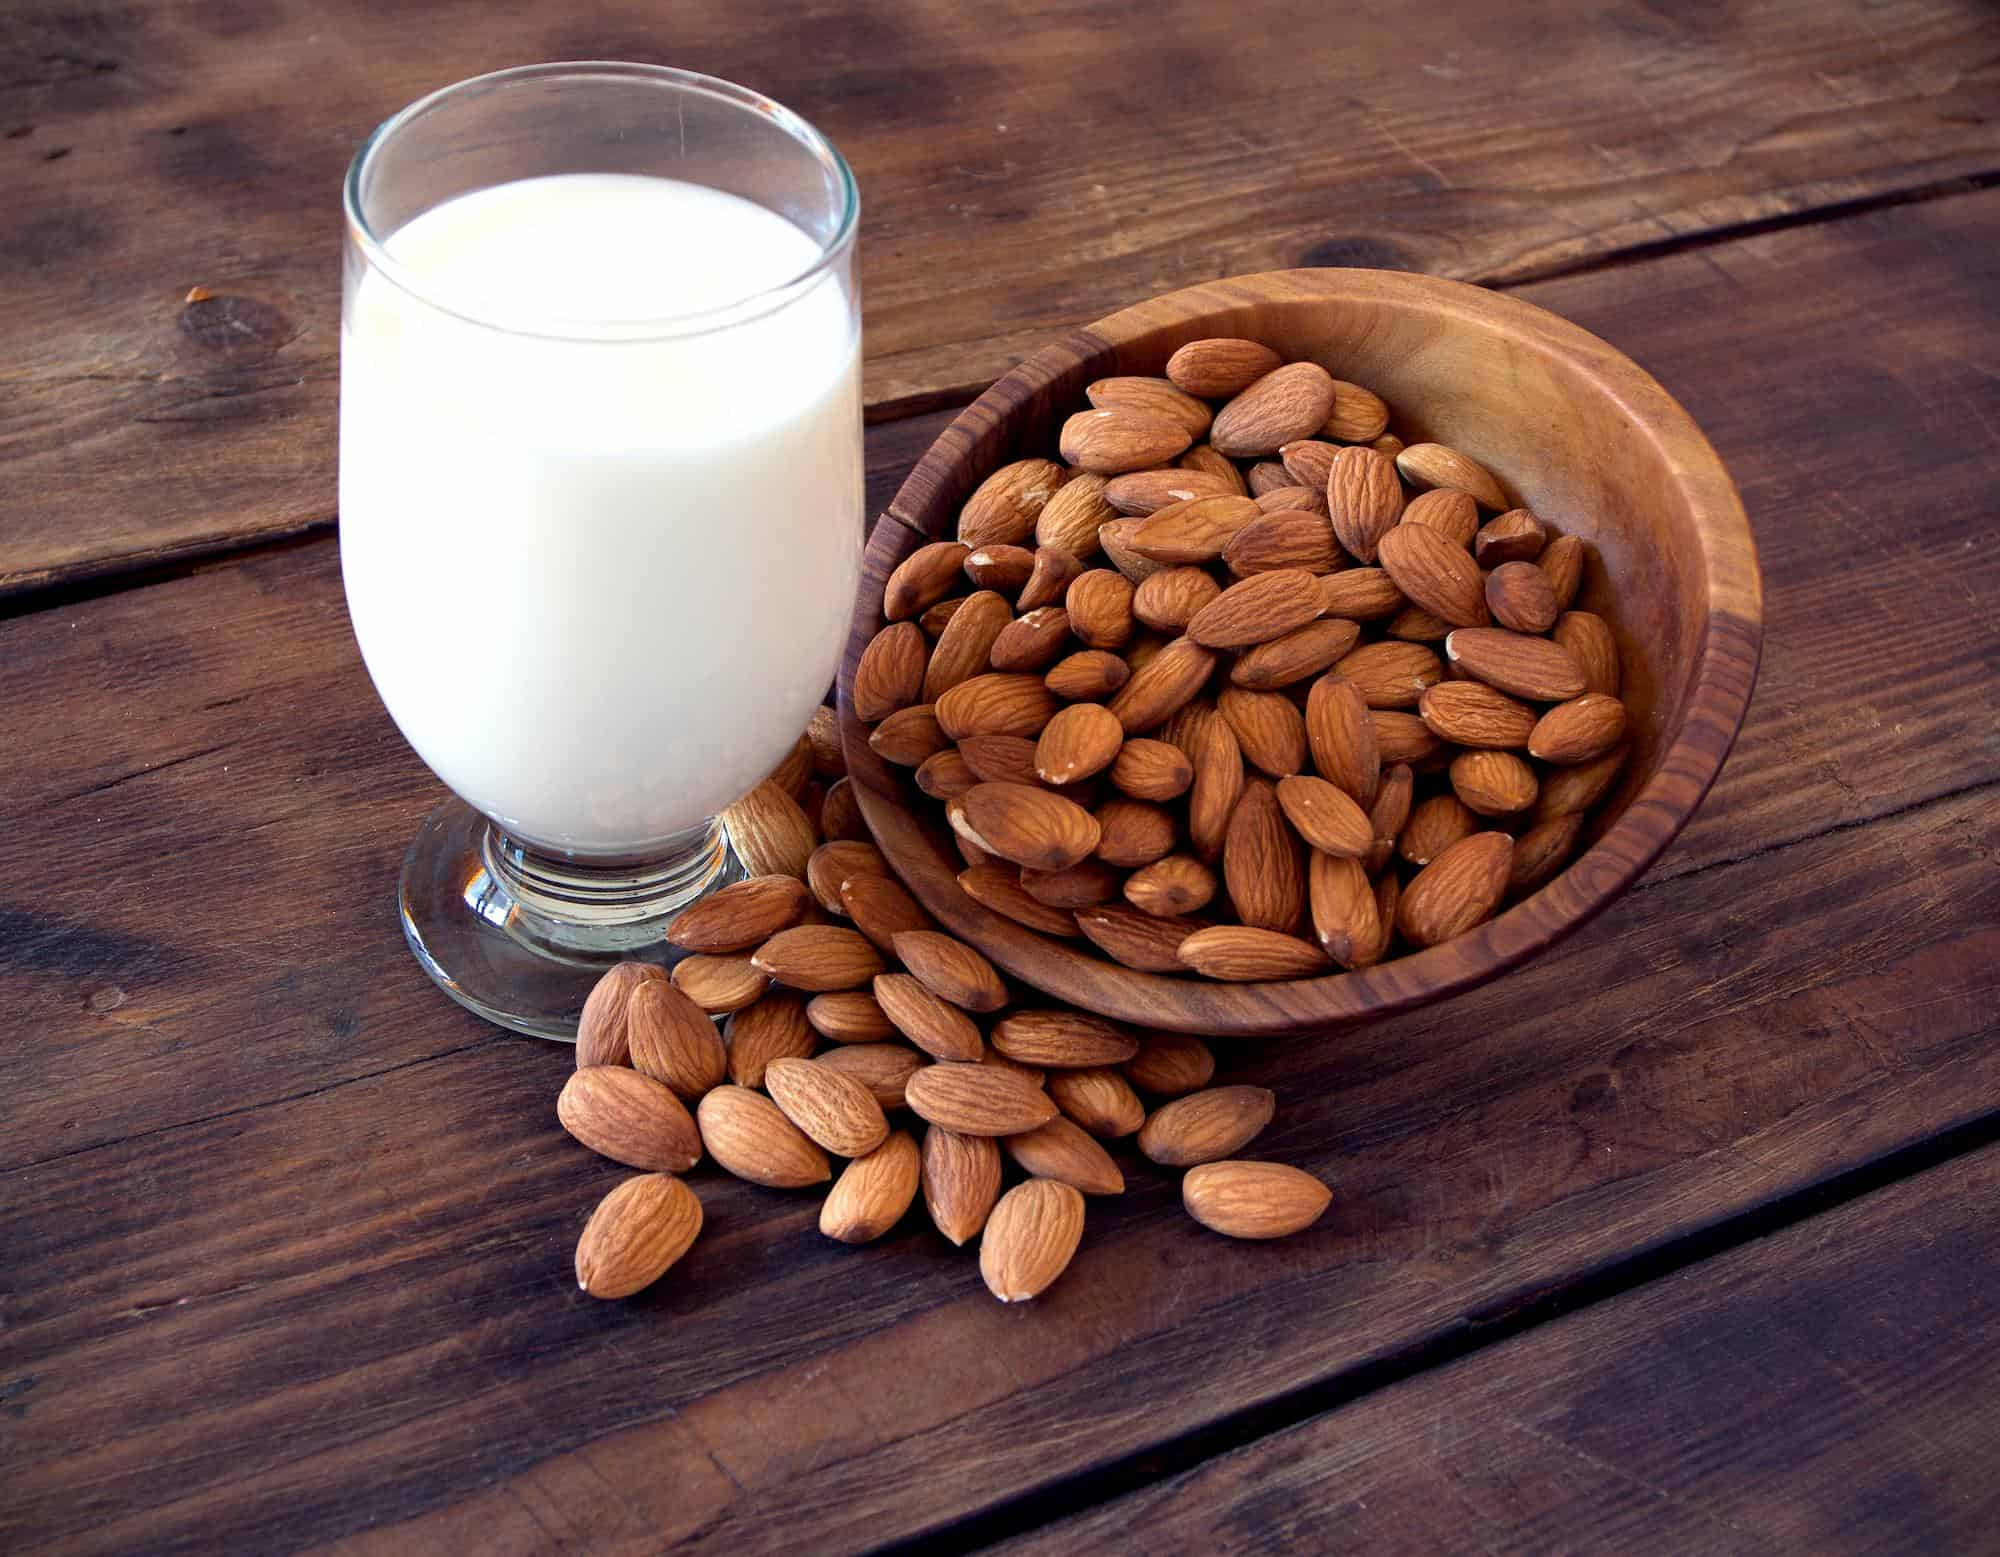 Almond milk in a cup